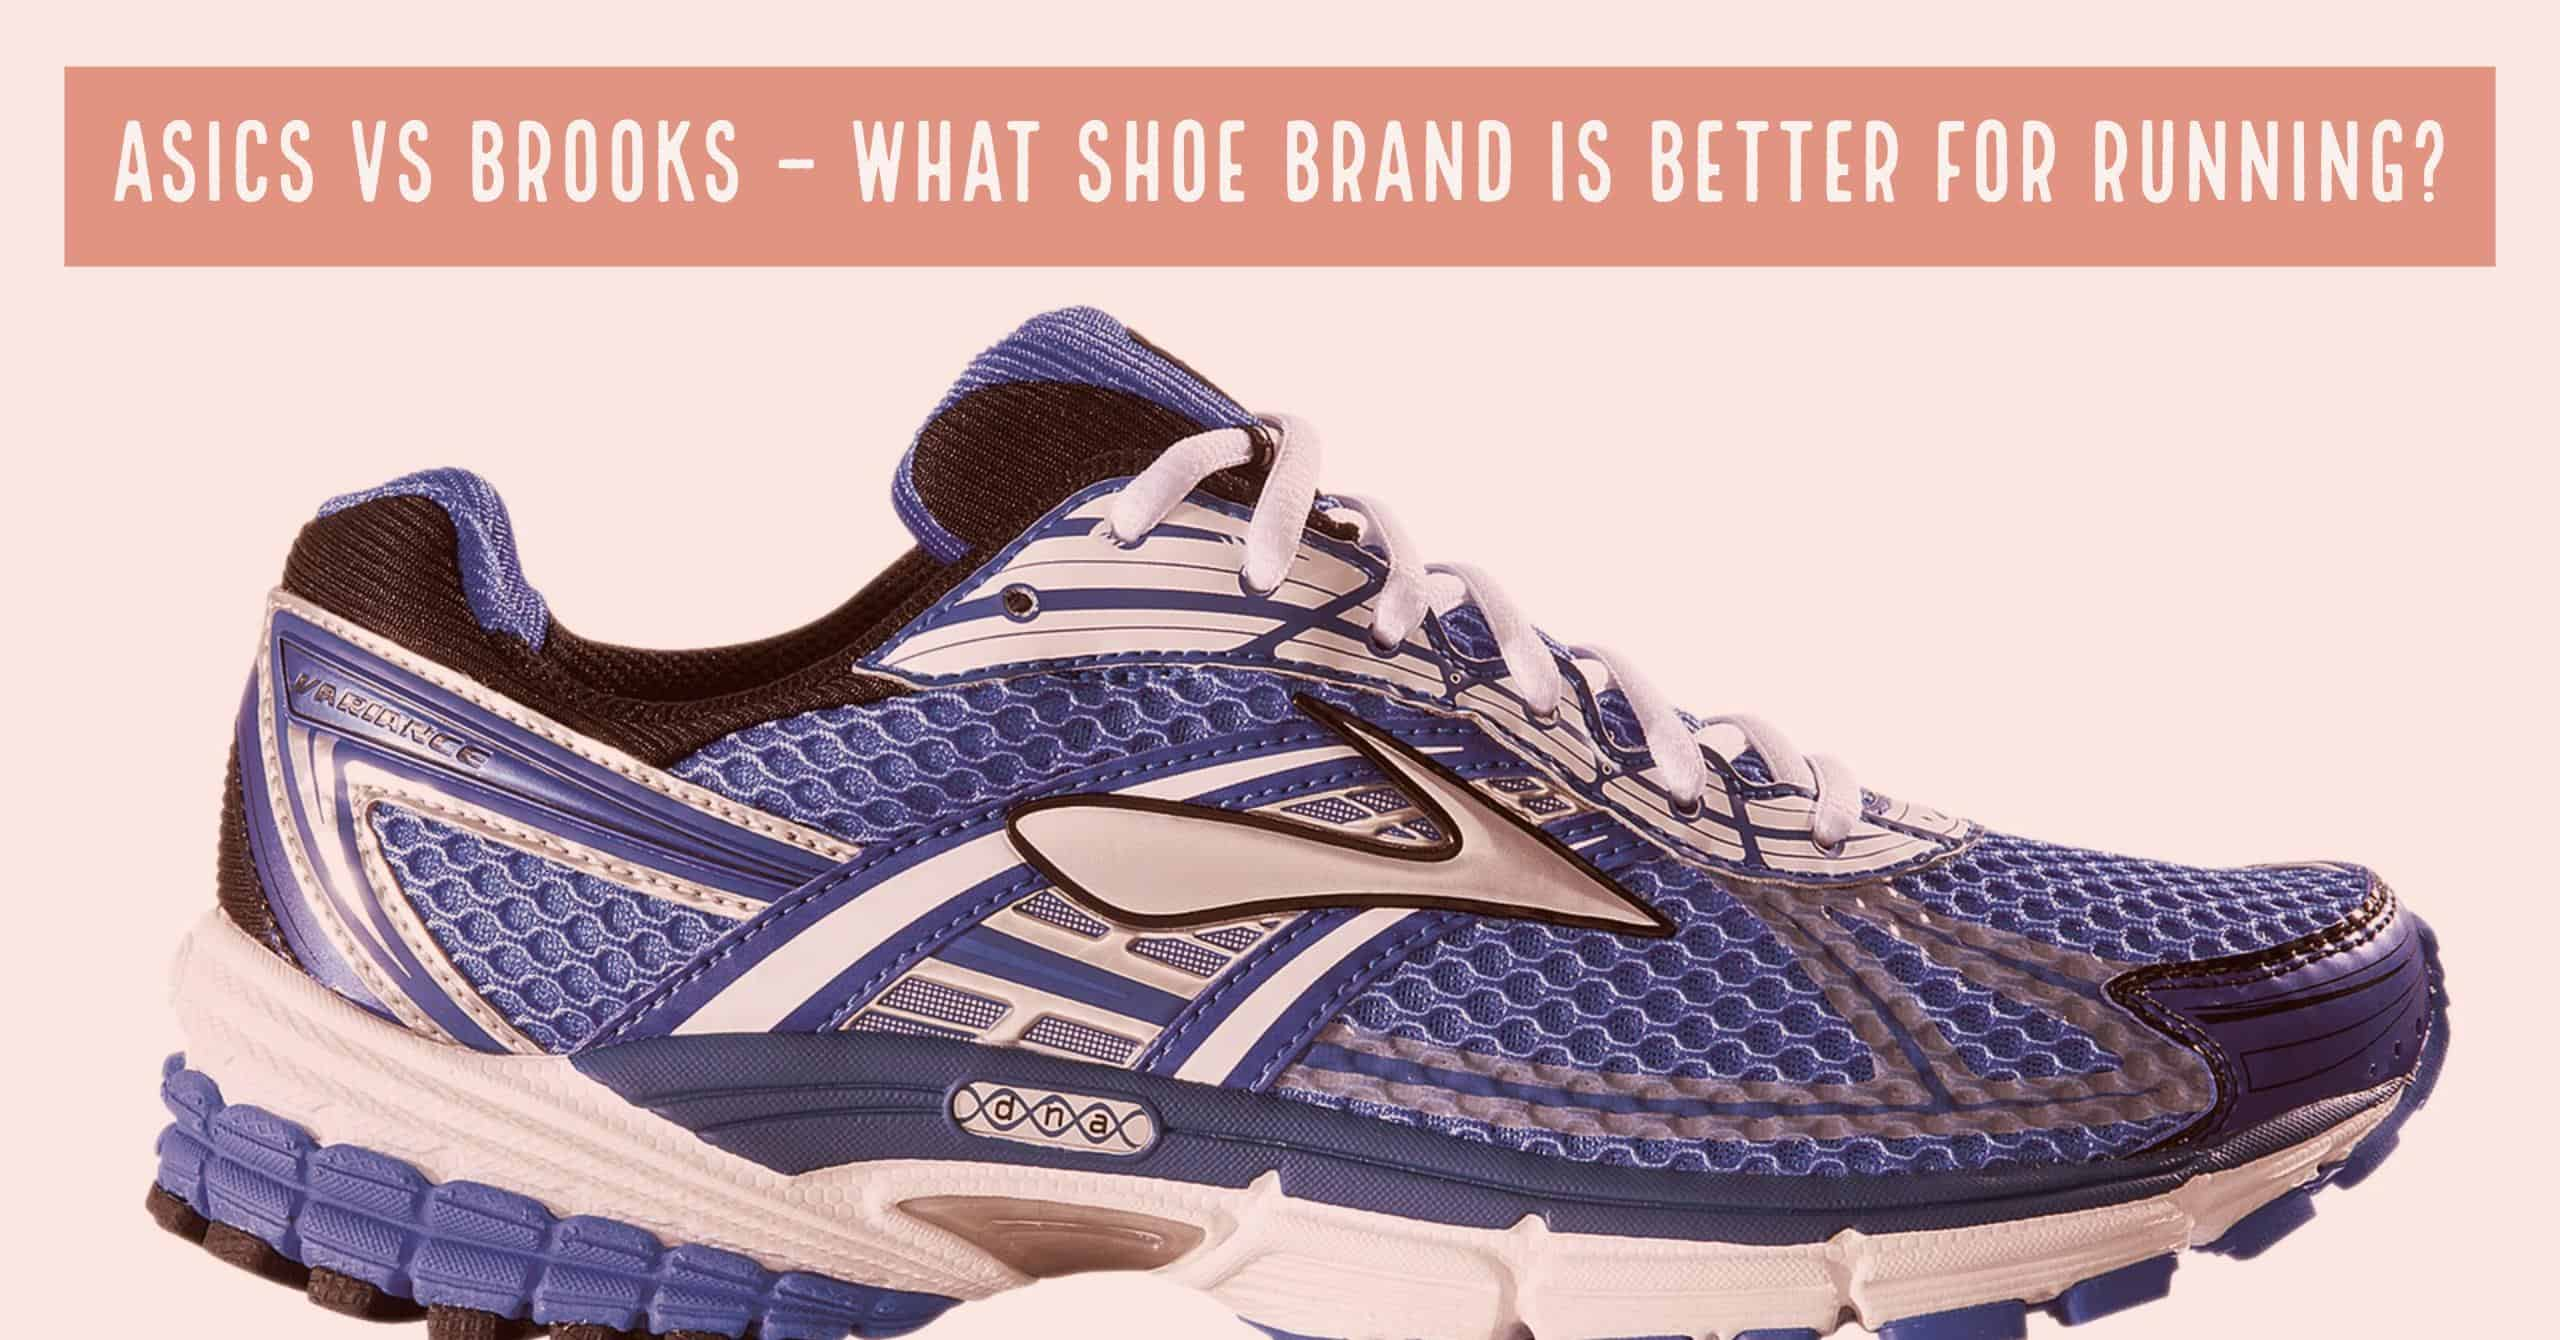 Asics Vs Brooks – What Shoe Brand is Better for Running?